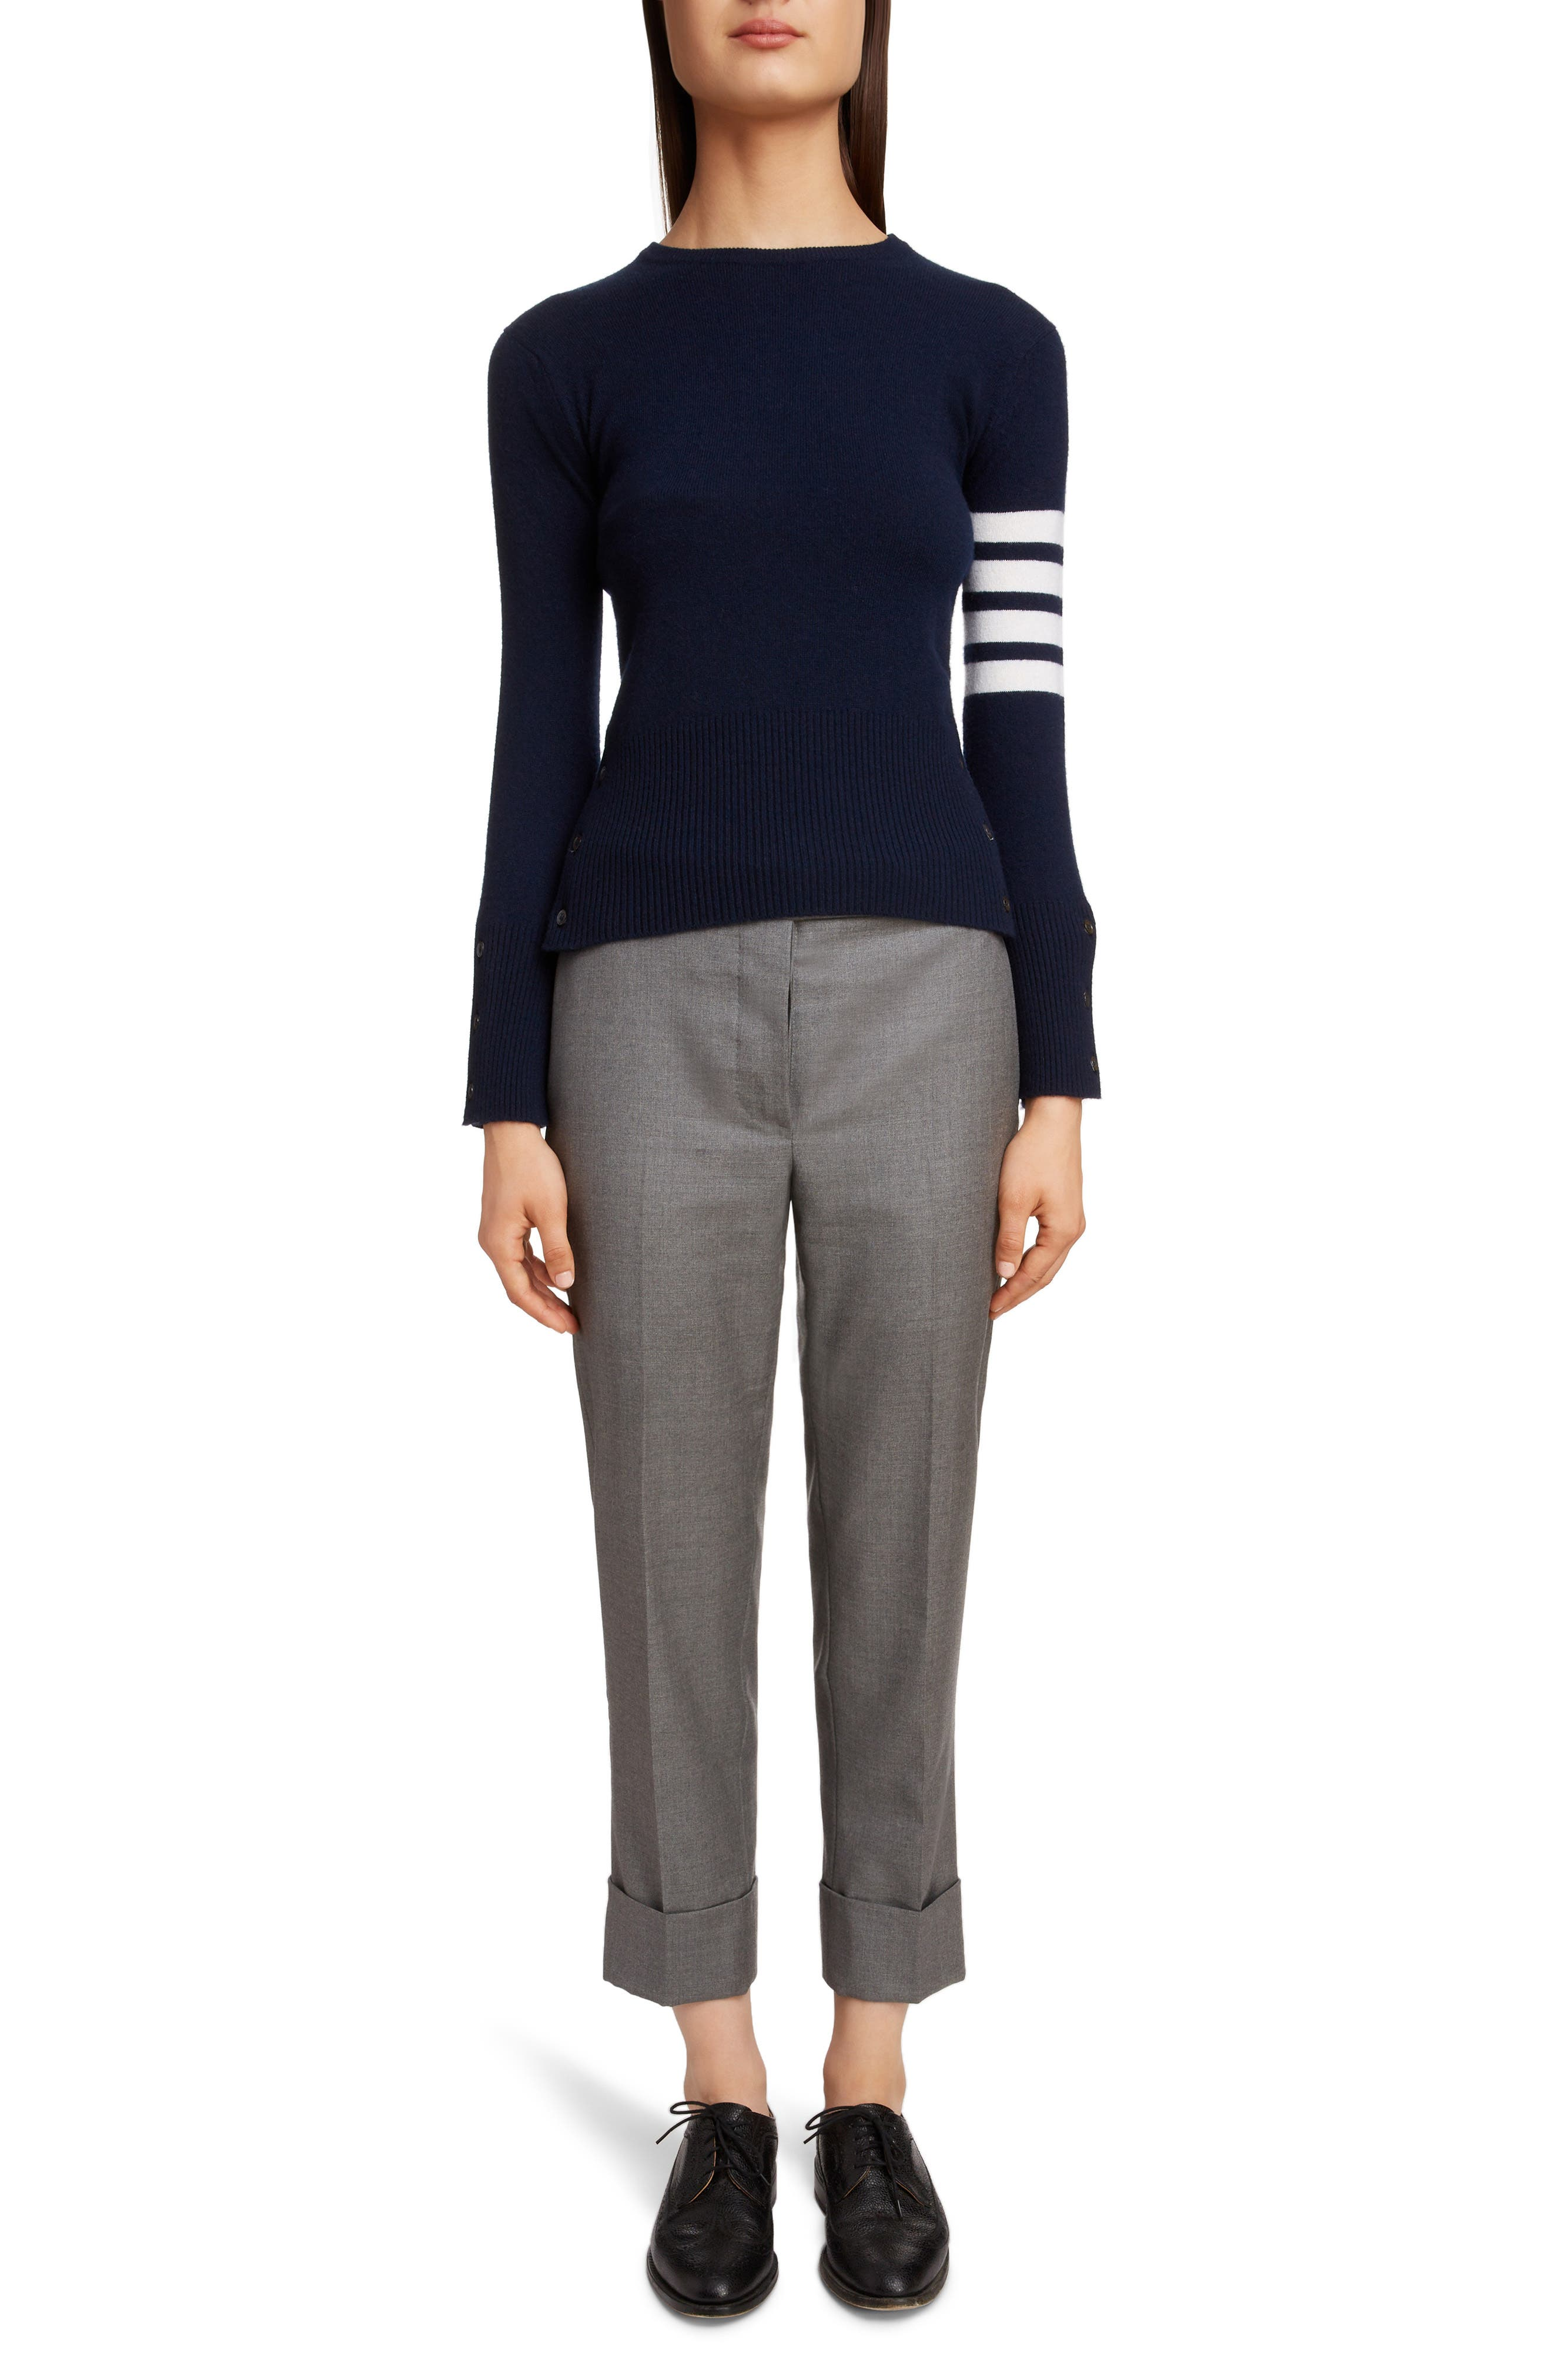 THOM BROWNE, Classic Crewneck Cashmere Sweater, Alternate thumbnail 6, color, NAVY